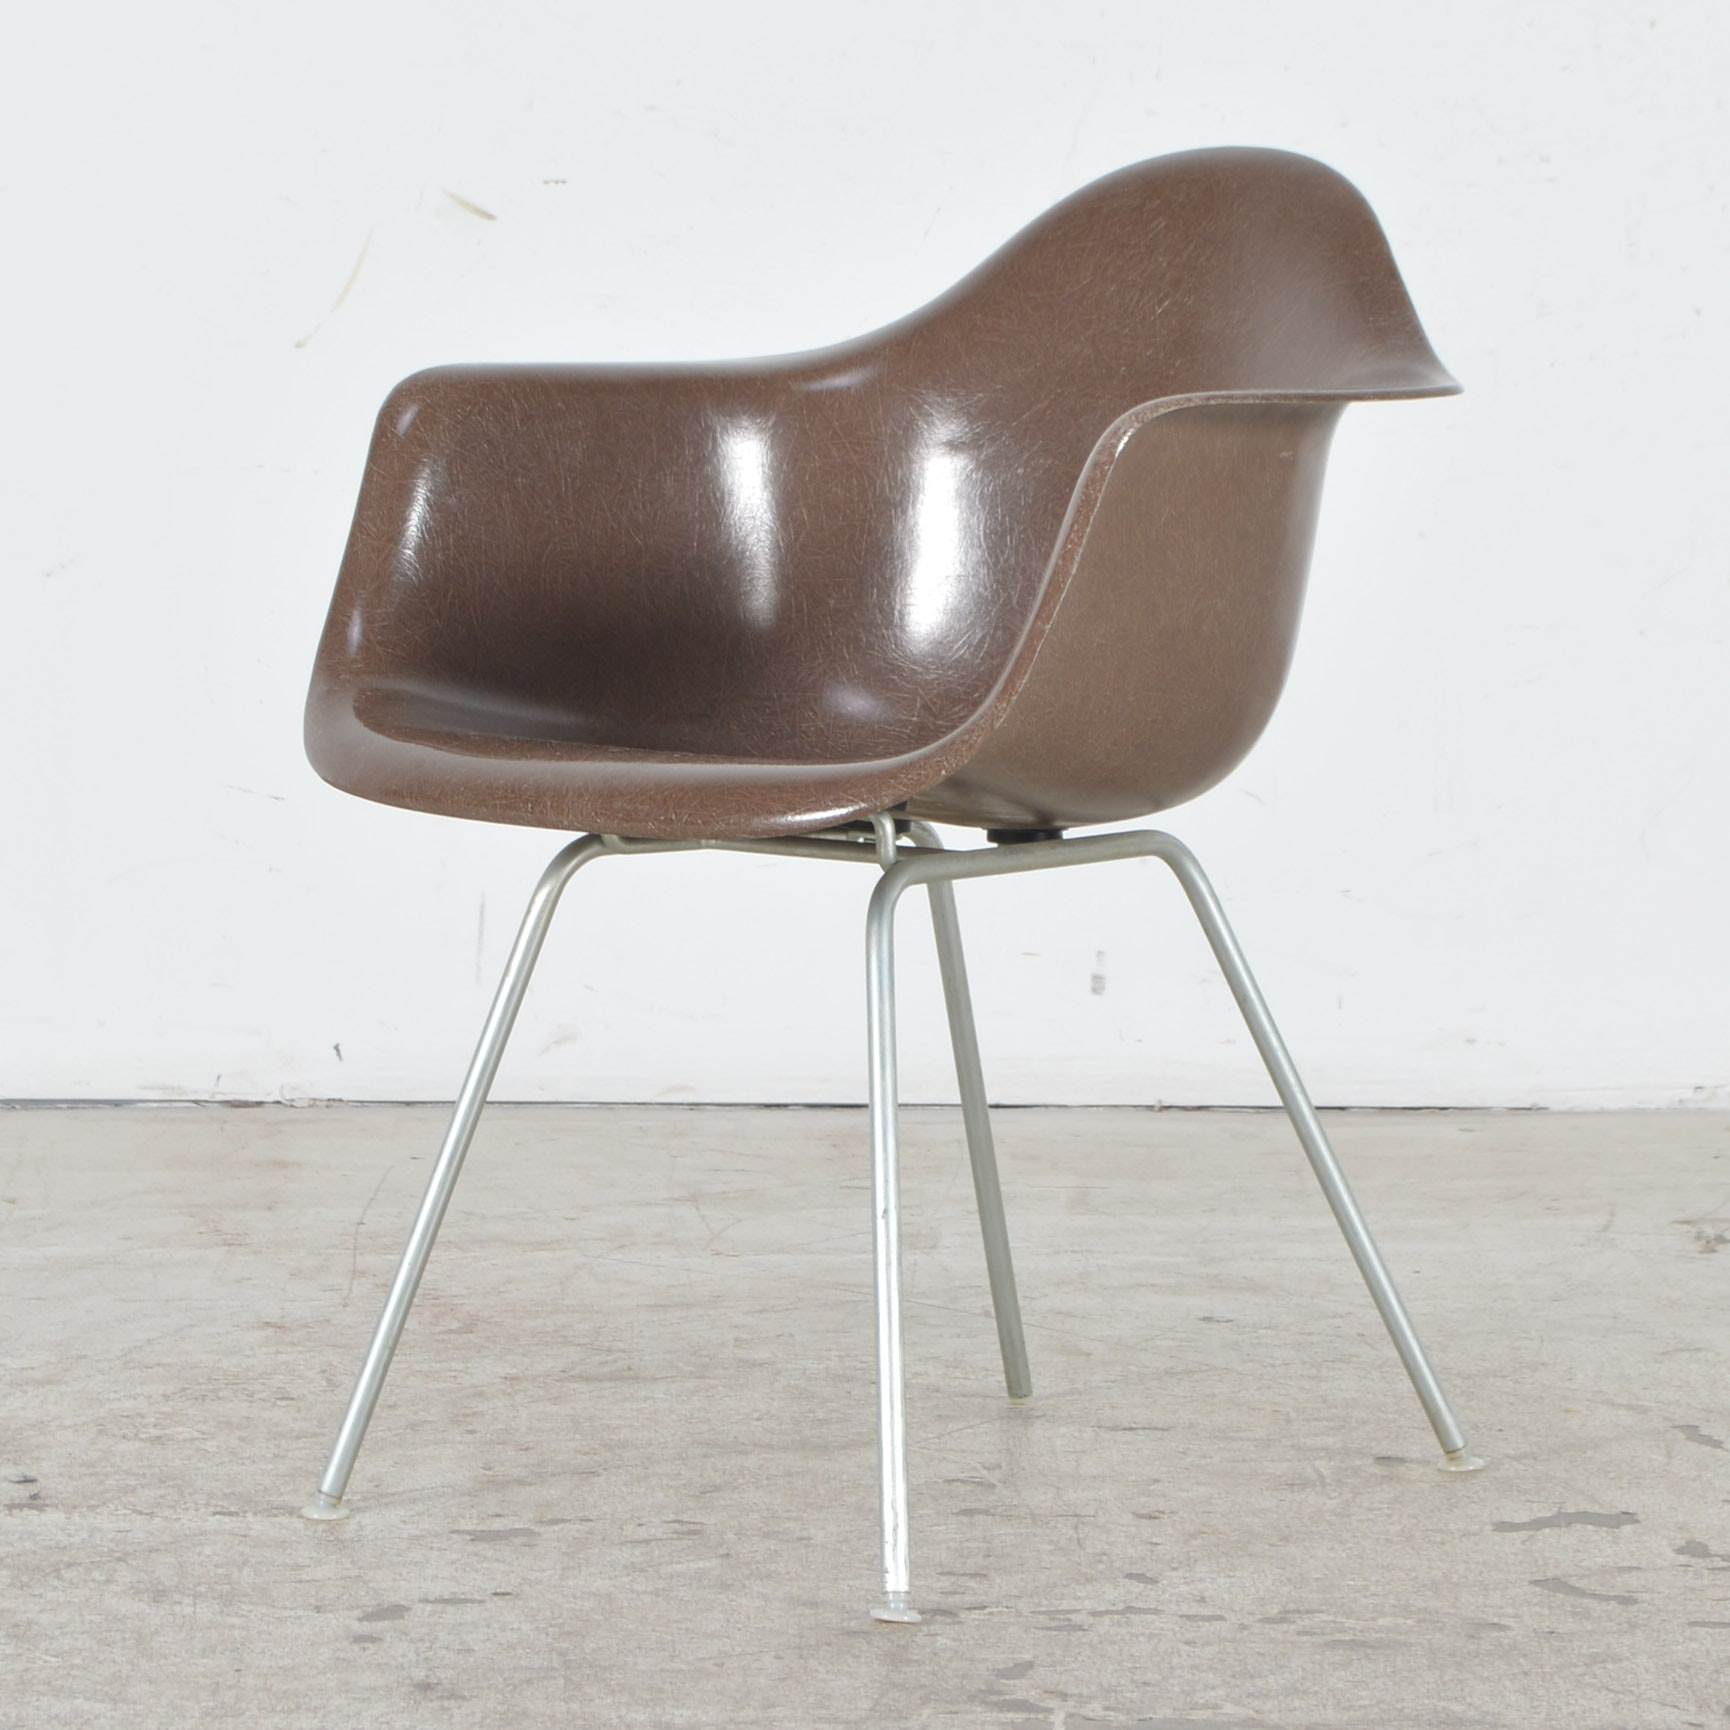 Molded Fiberglass Shell Chair By Eames For Herman Miller ...